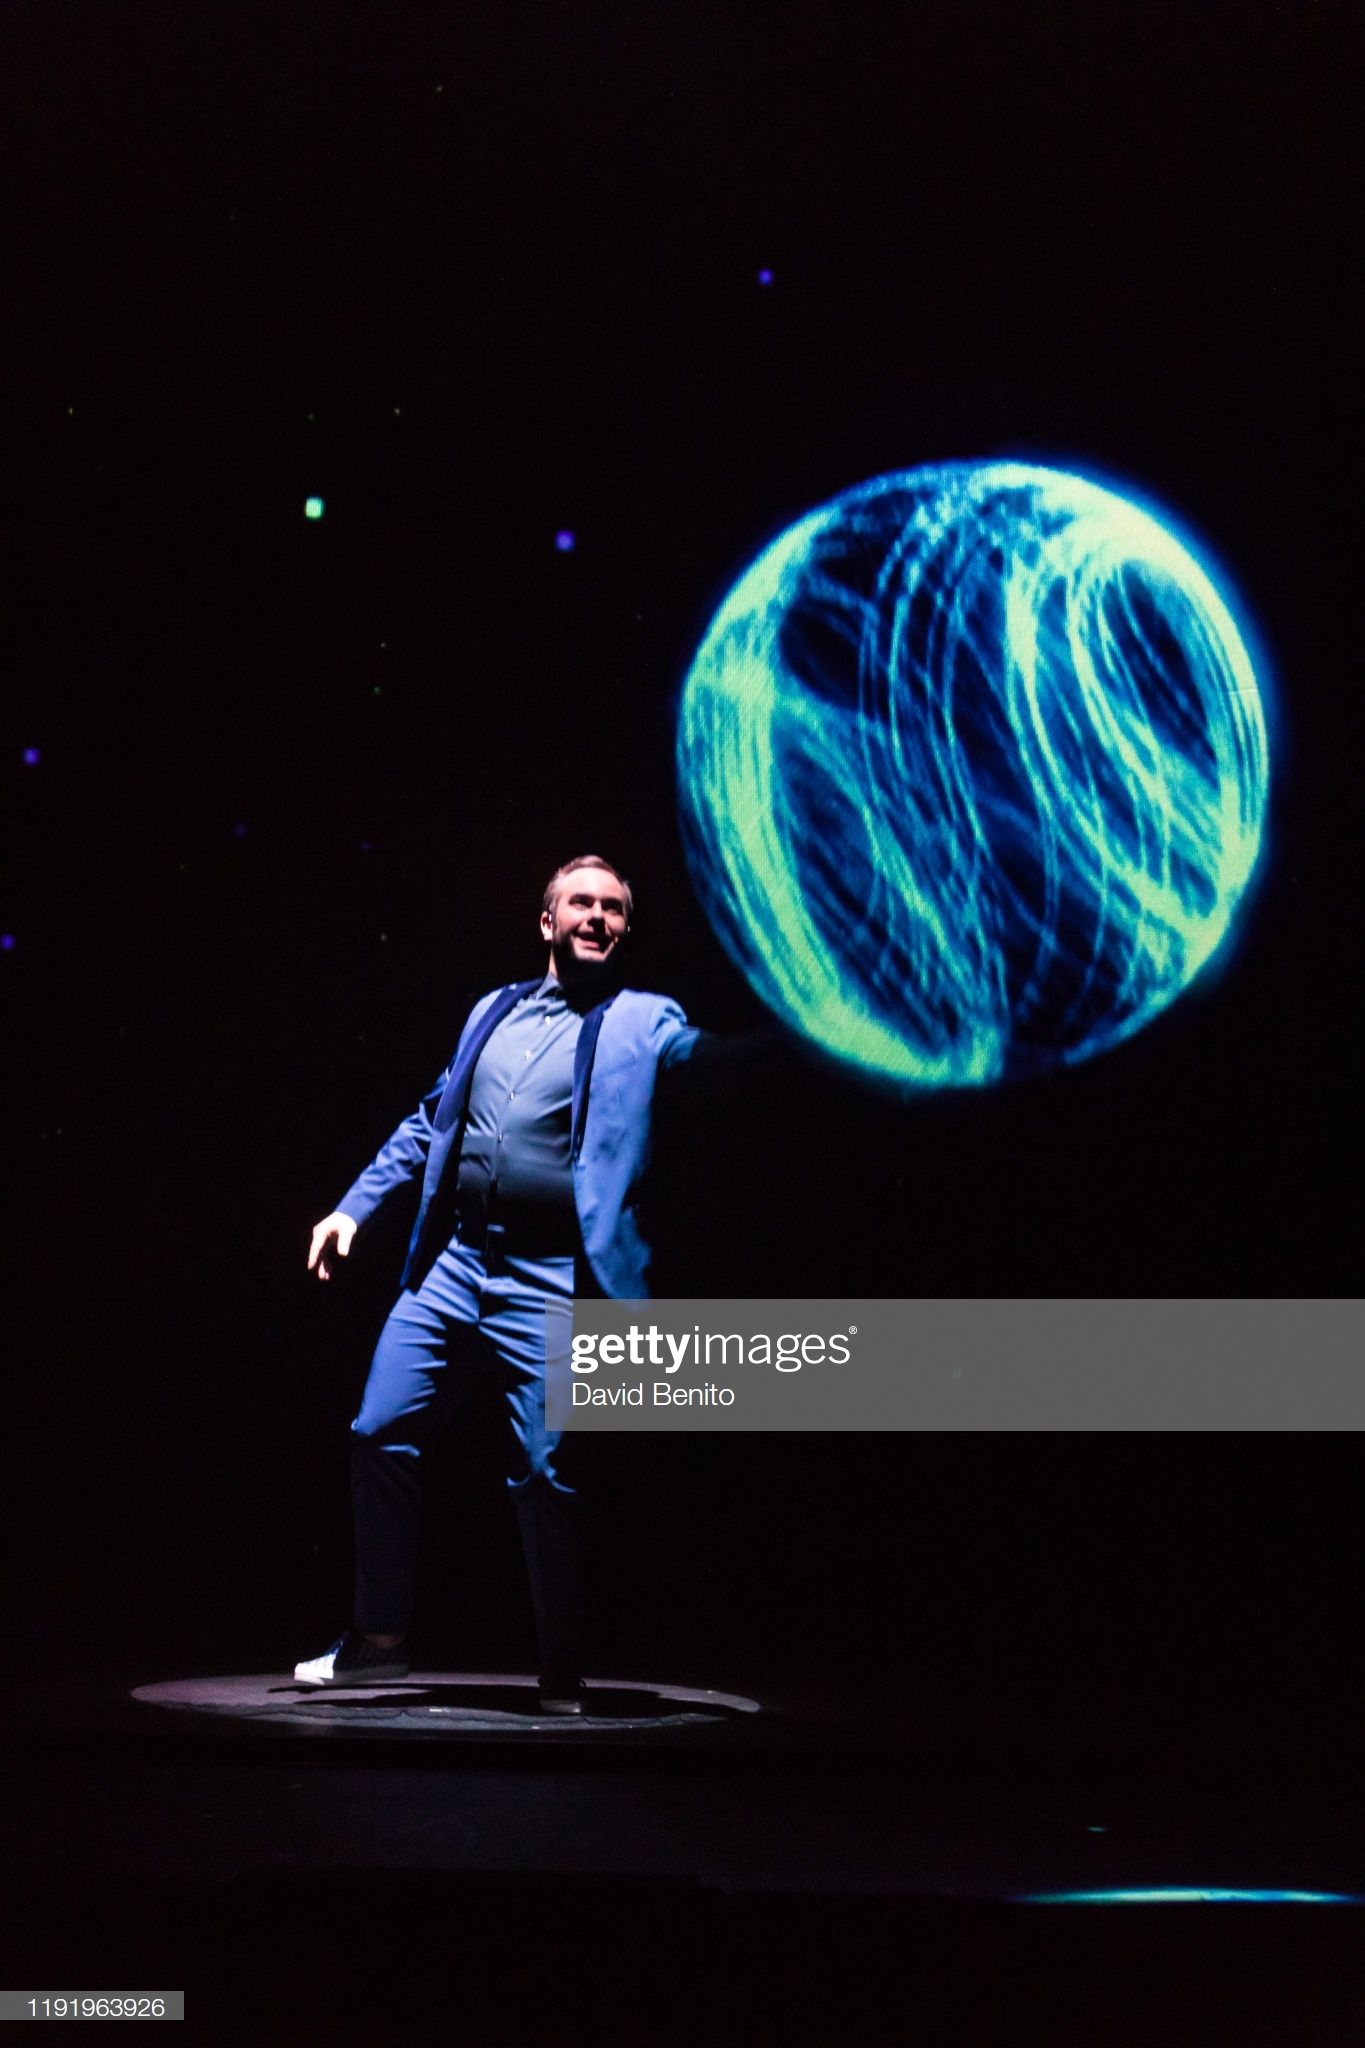 gettyimages-1191963926-2048x2048